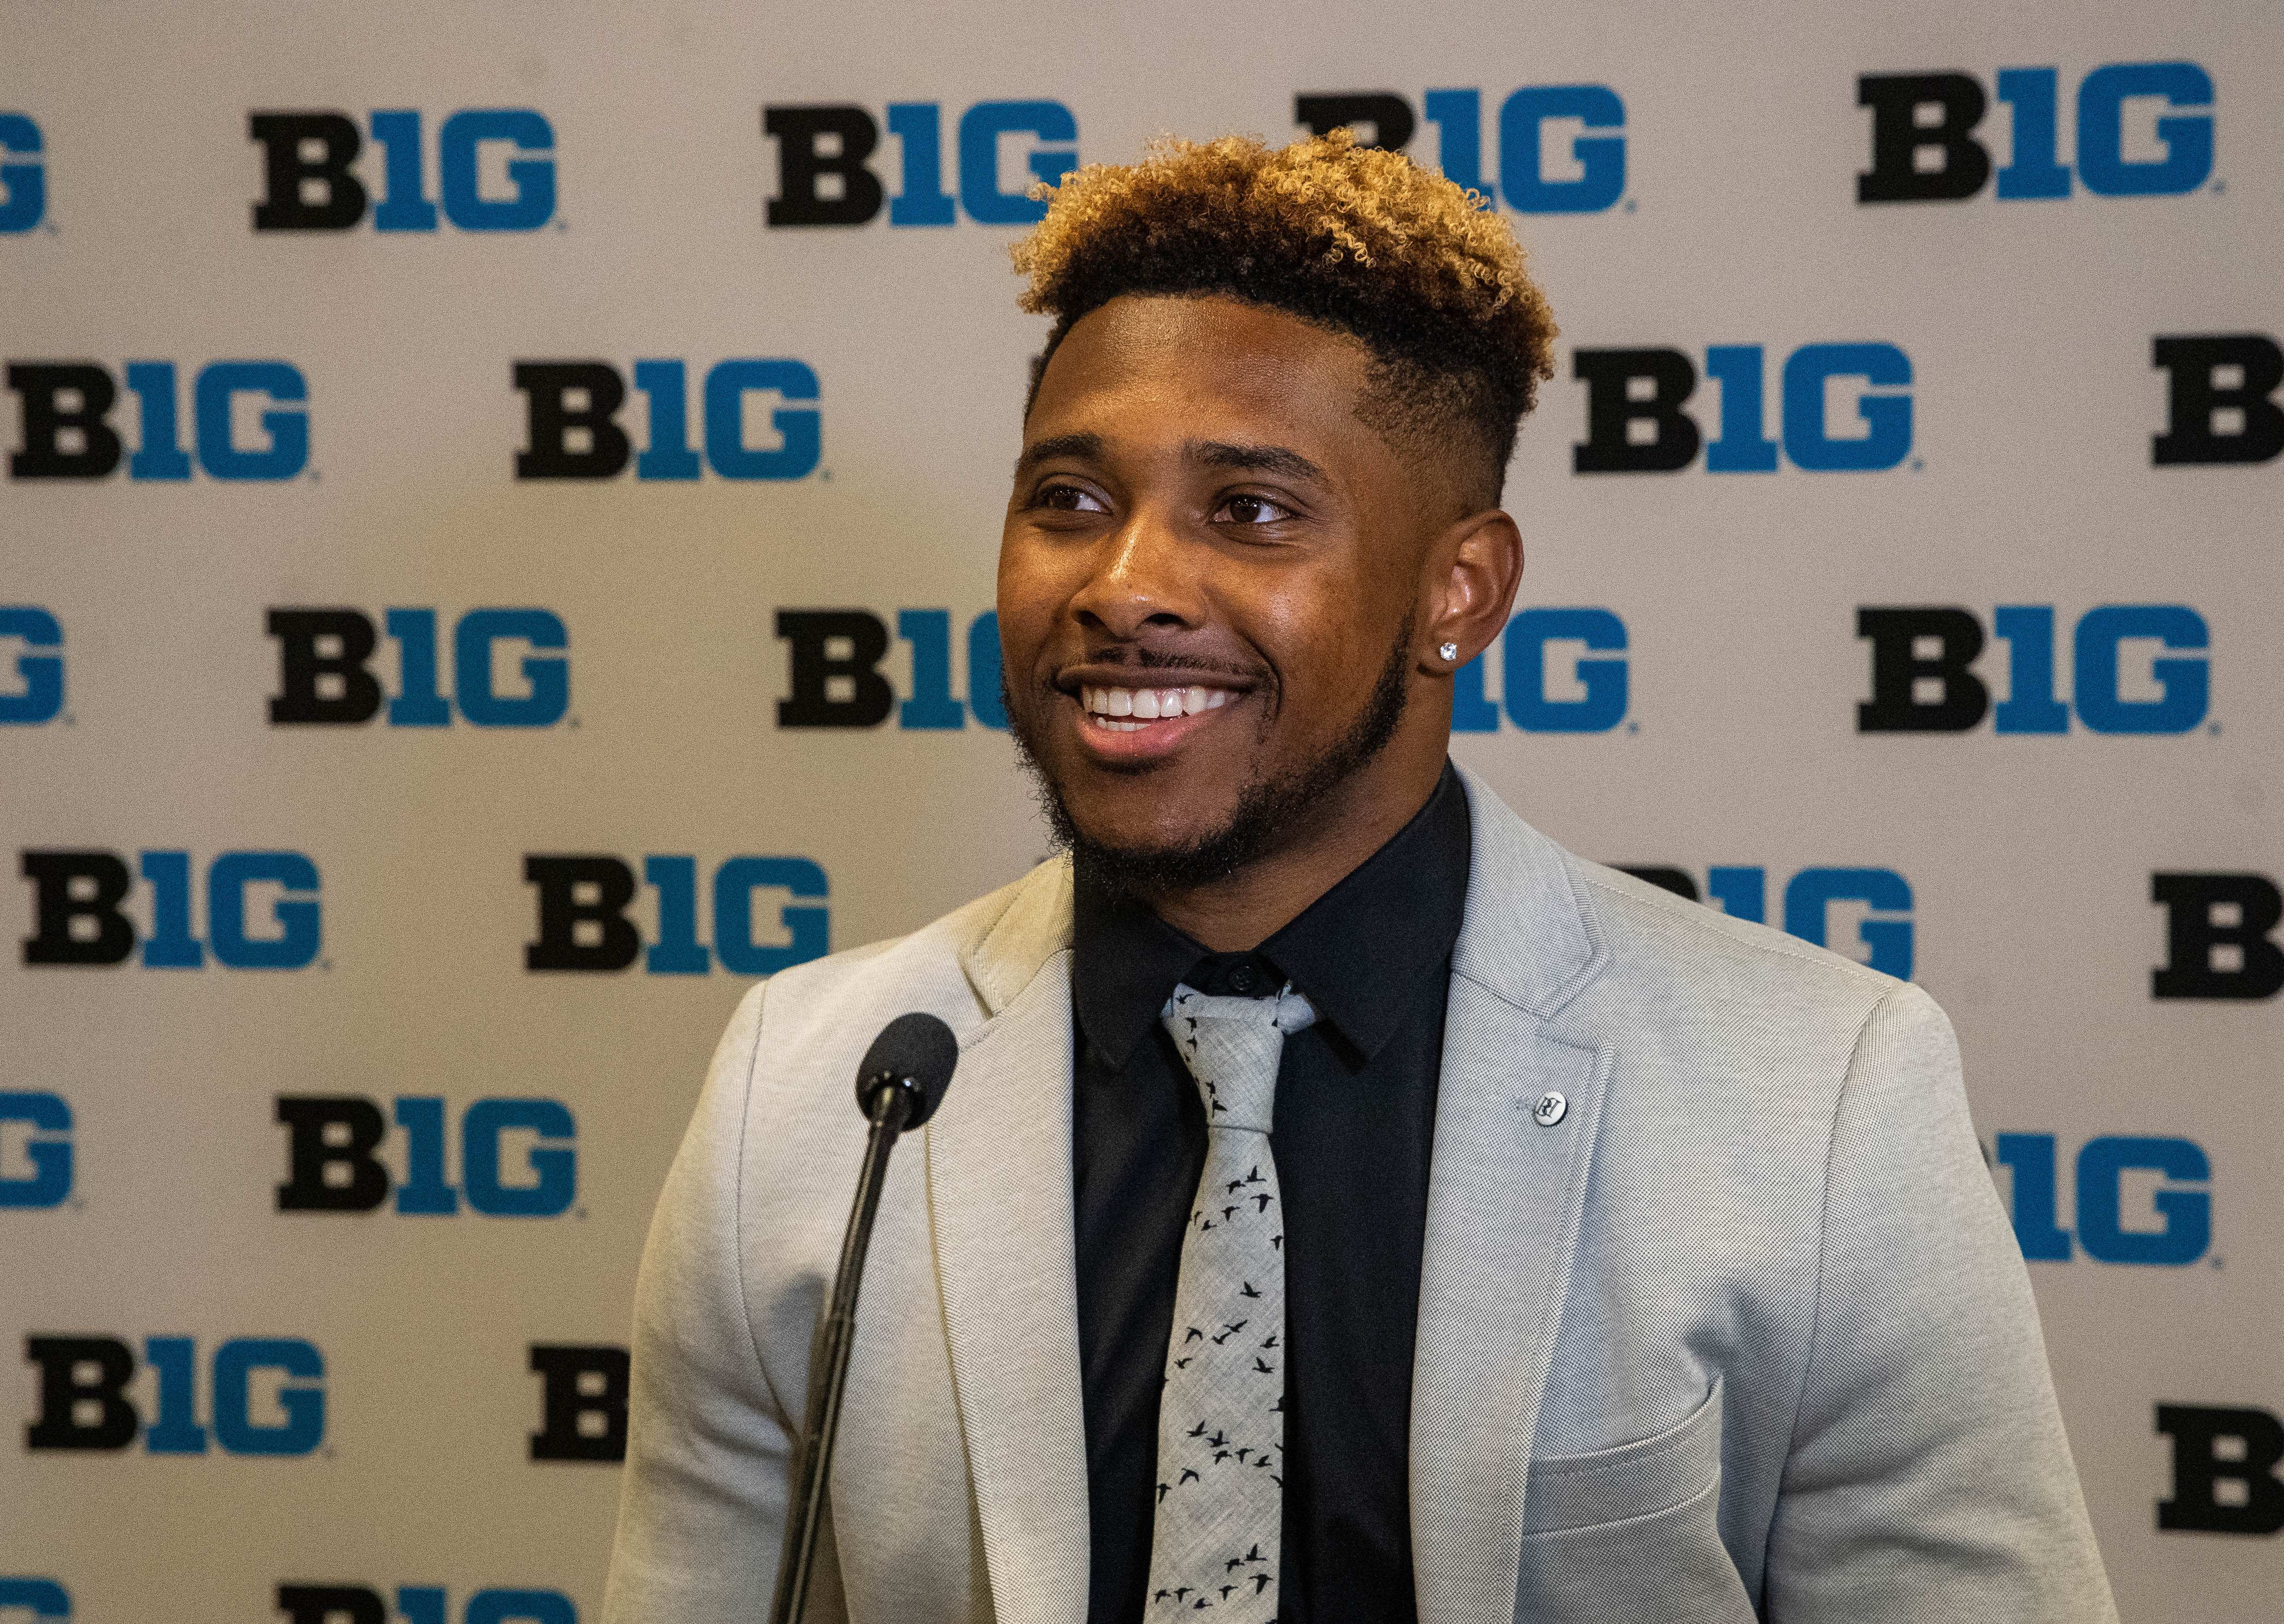 Senior running back for the Illini, Reggie Corbin spoke about his breakout junior season and expectations for his senior campaign at Big Ten Media Days at the Hilton Chicago.